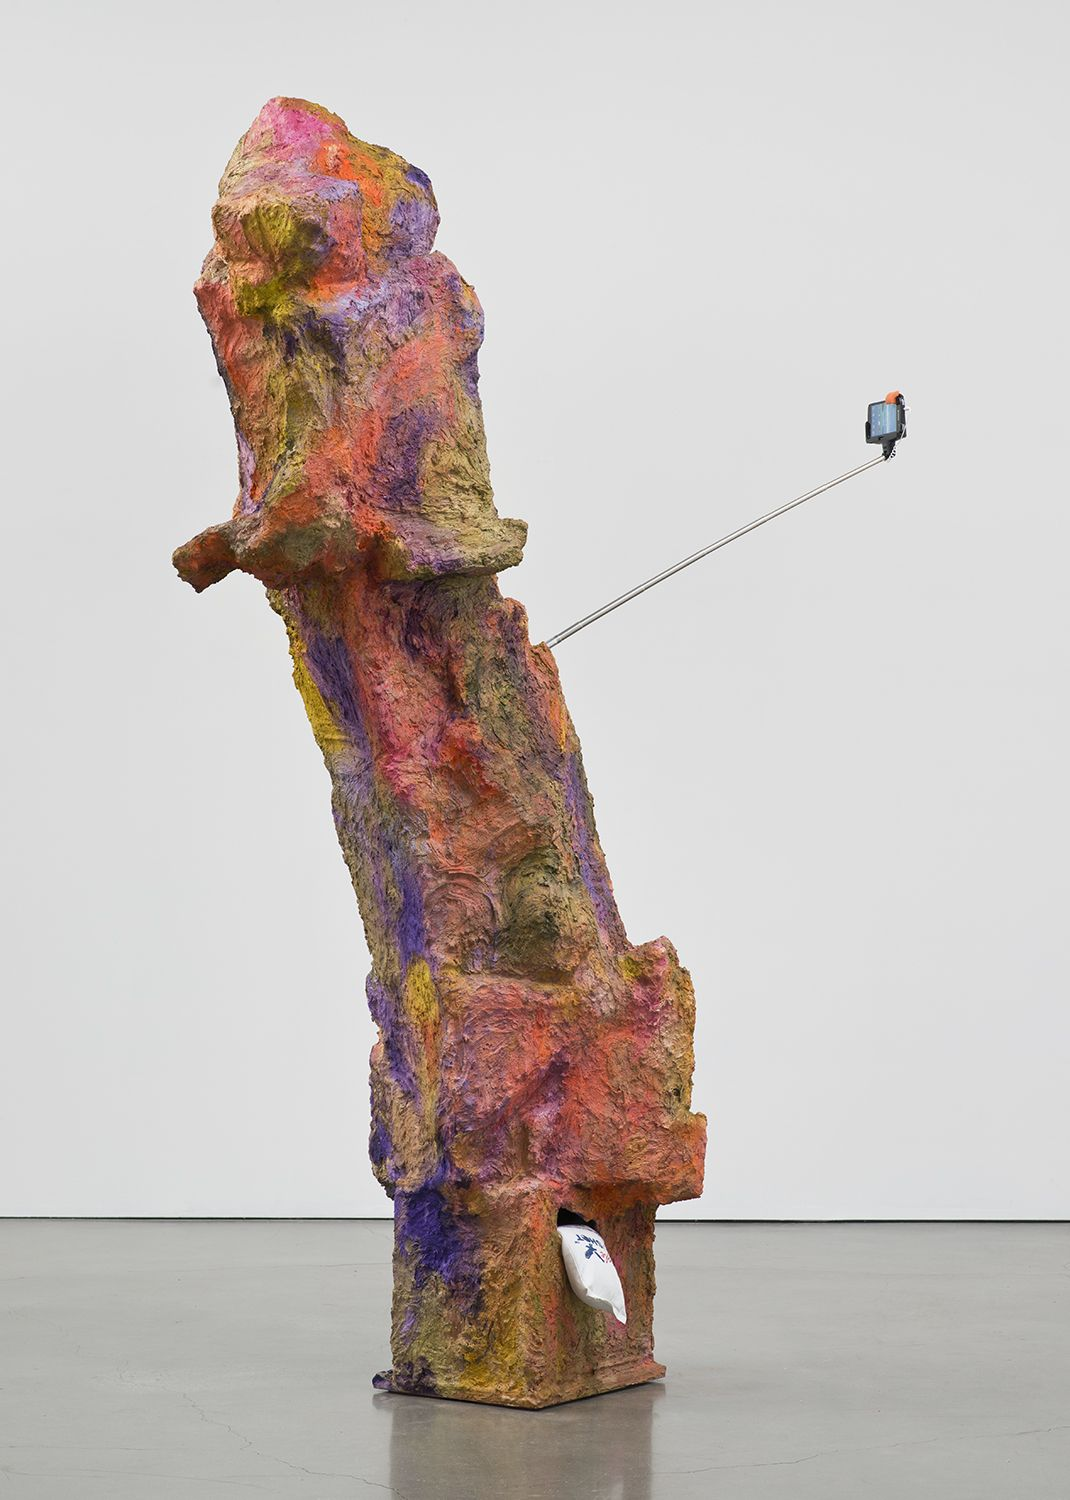 Rachel Harrison Magnum, 2015 Wood, polystyrene, chicken wire, cement, acrylic, Eagle Magnum Lead shot, selfie stick and display phone 85 1/2 x 56 x 22 inches (217.2 x 142.2 x 55.9 cm)